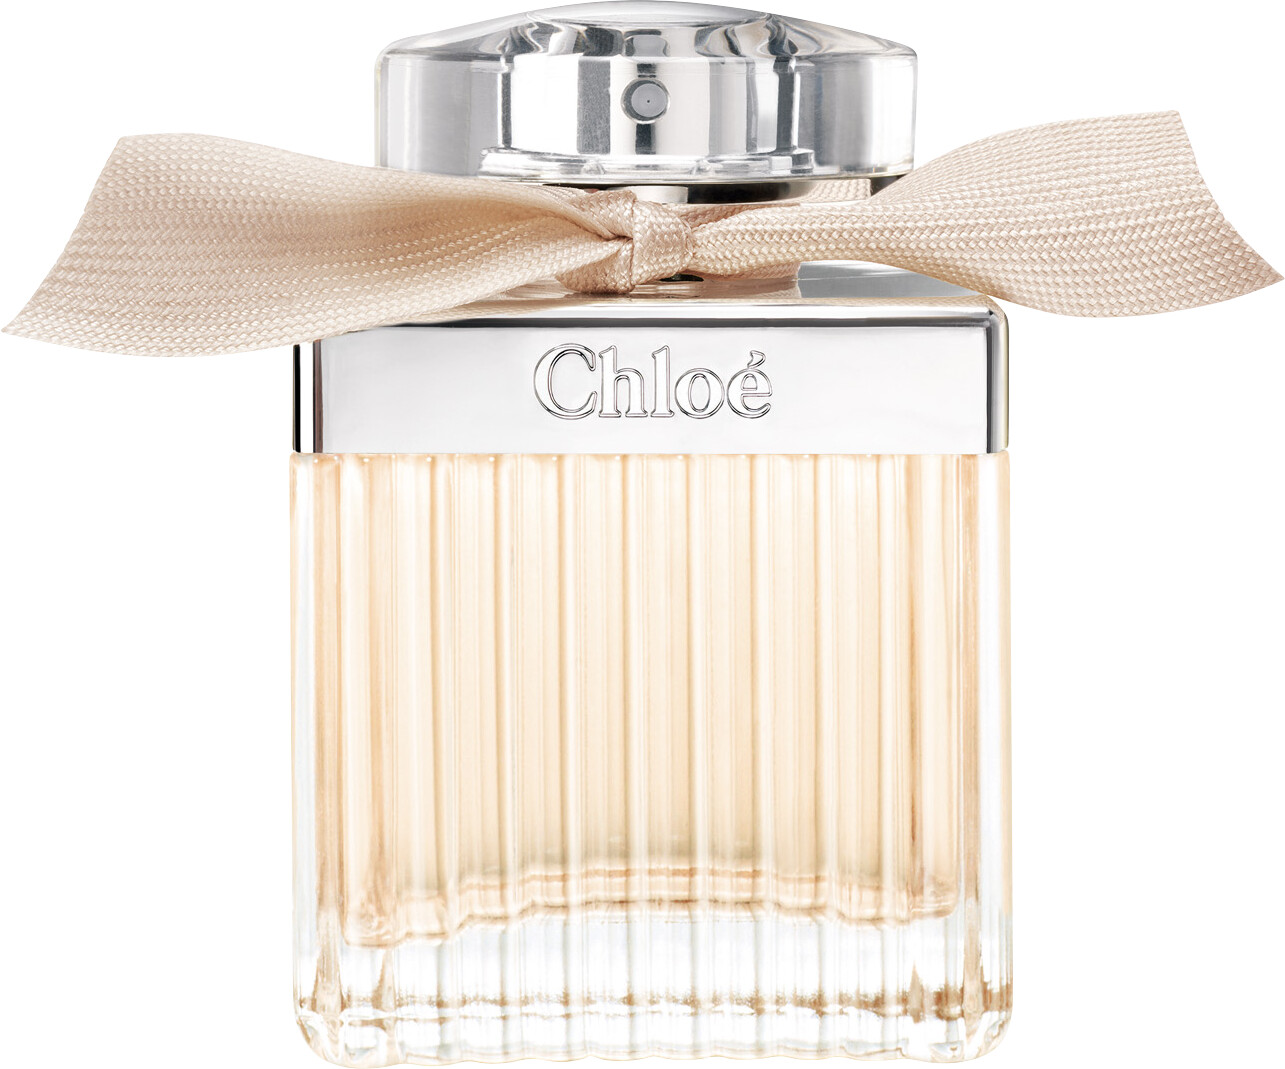 Chloe perfume - a great gift for a woman 12